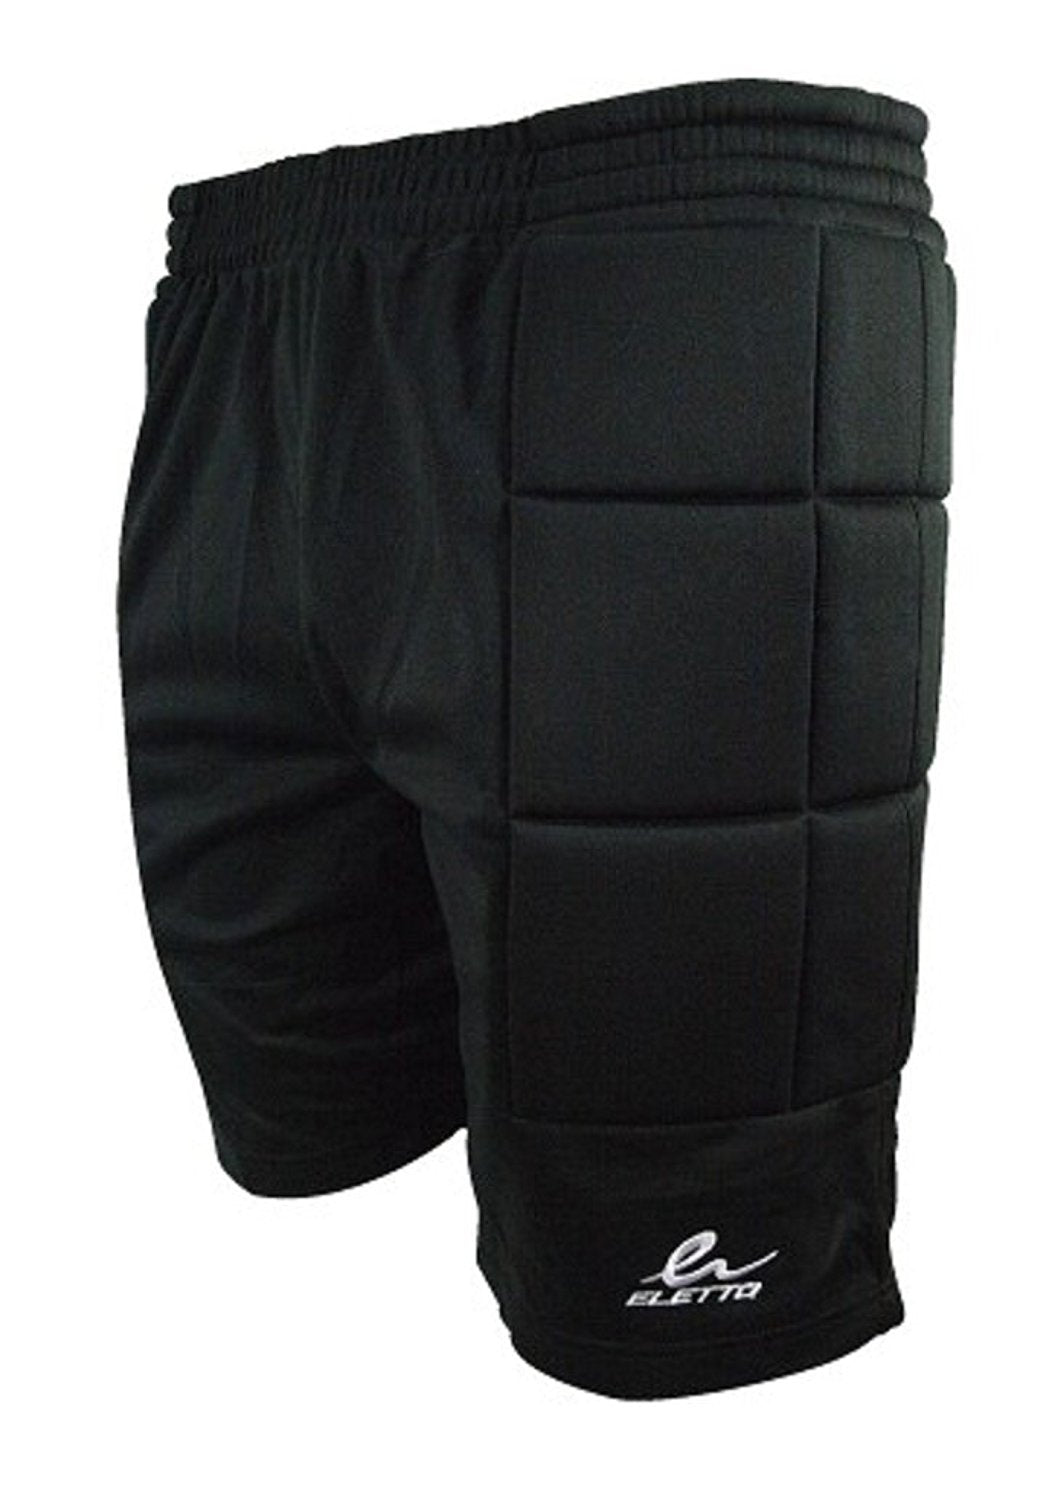 Eletto short de protection de gardien de but de soccer junior